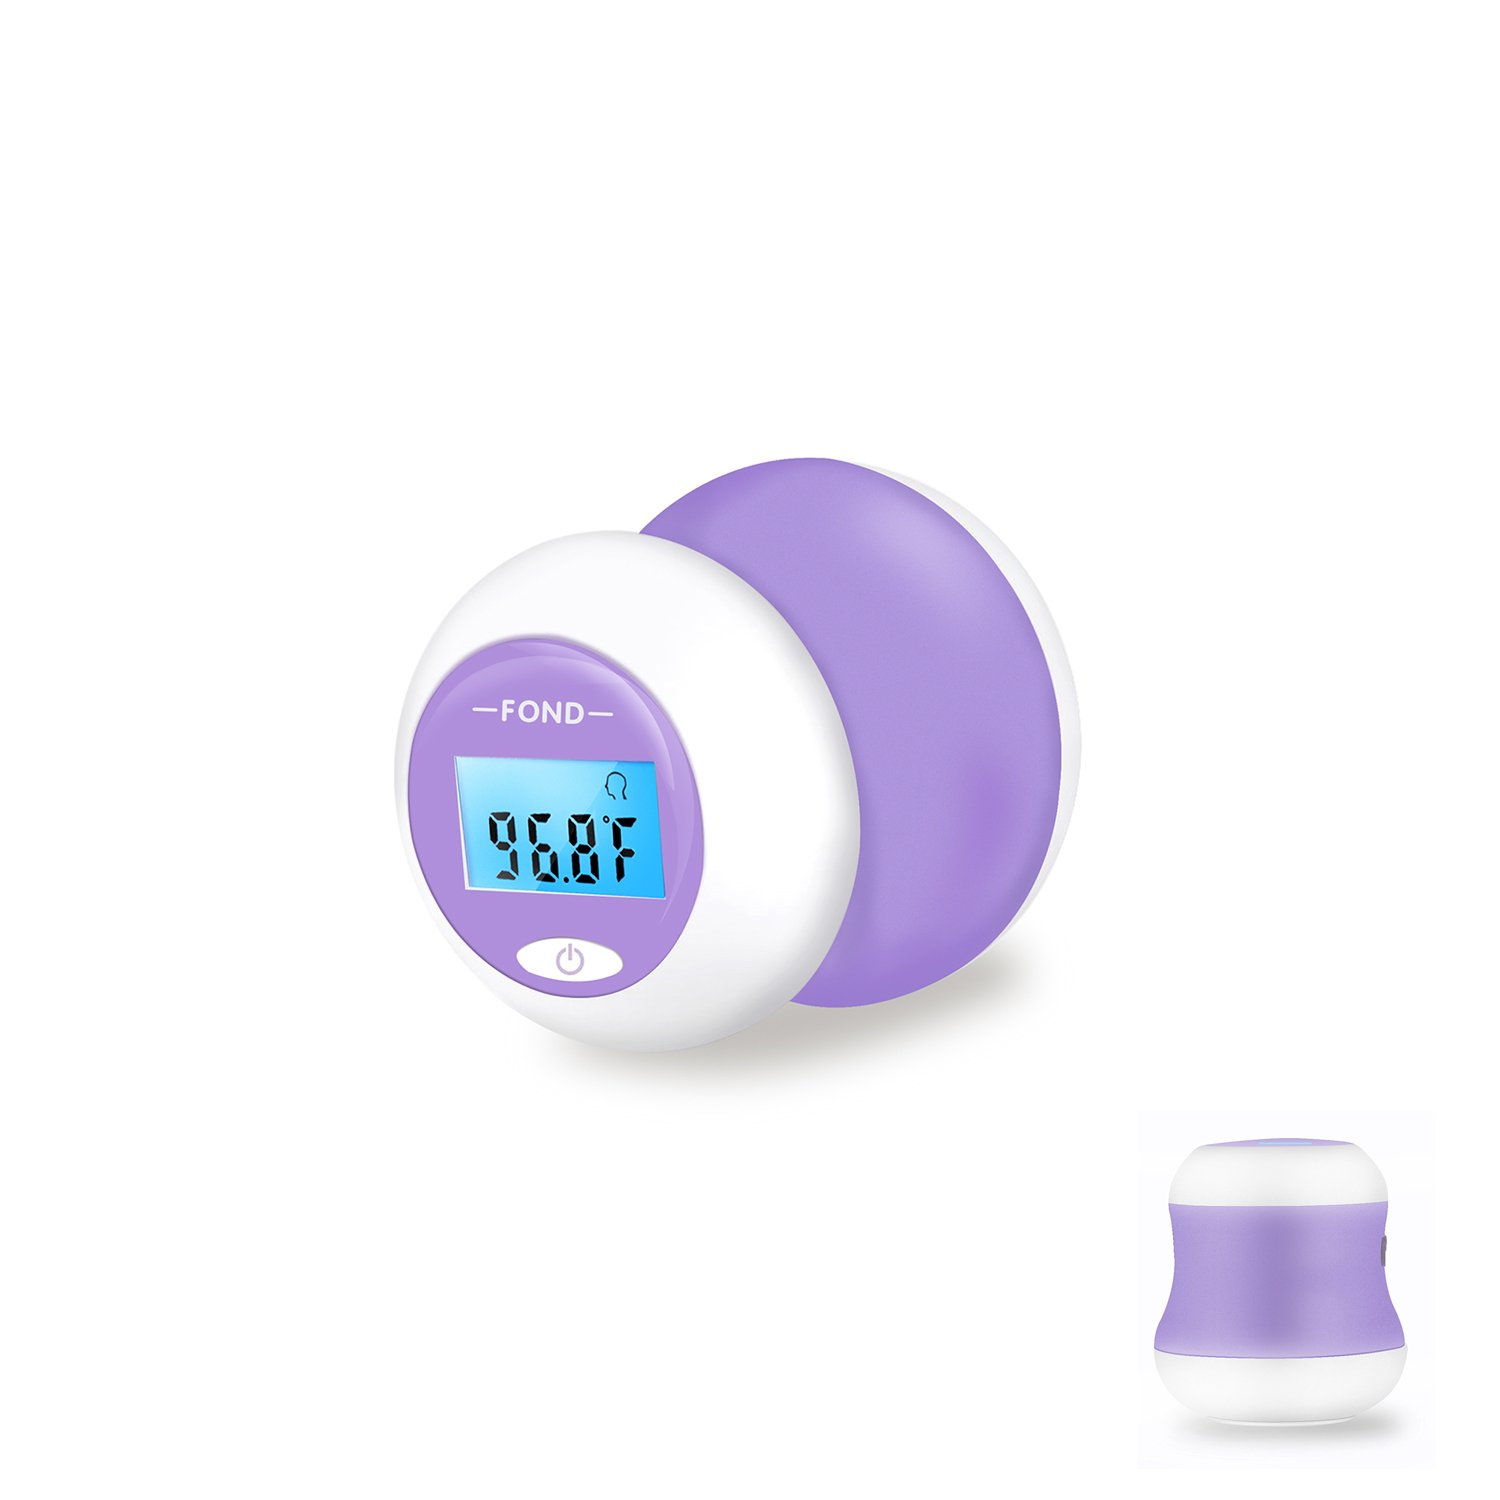 C//F Switchable Suitable for Home All Age 12 Memory Blue Backlight FOND Baby Rechargeable Forehead Thermometer Measure Temperature in 1s